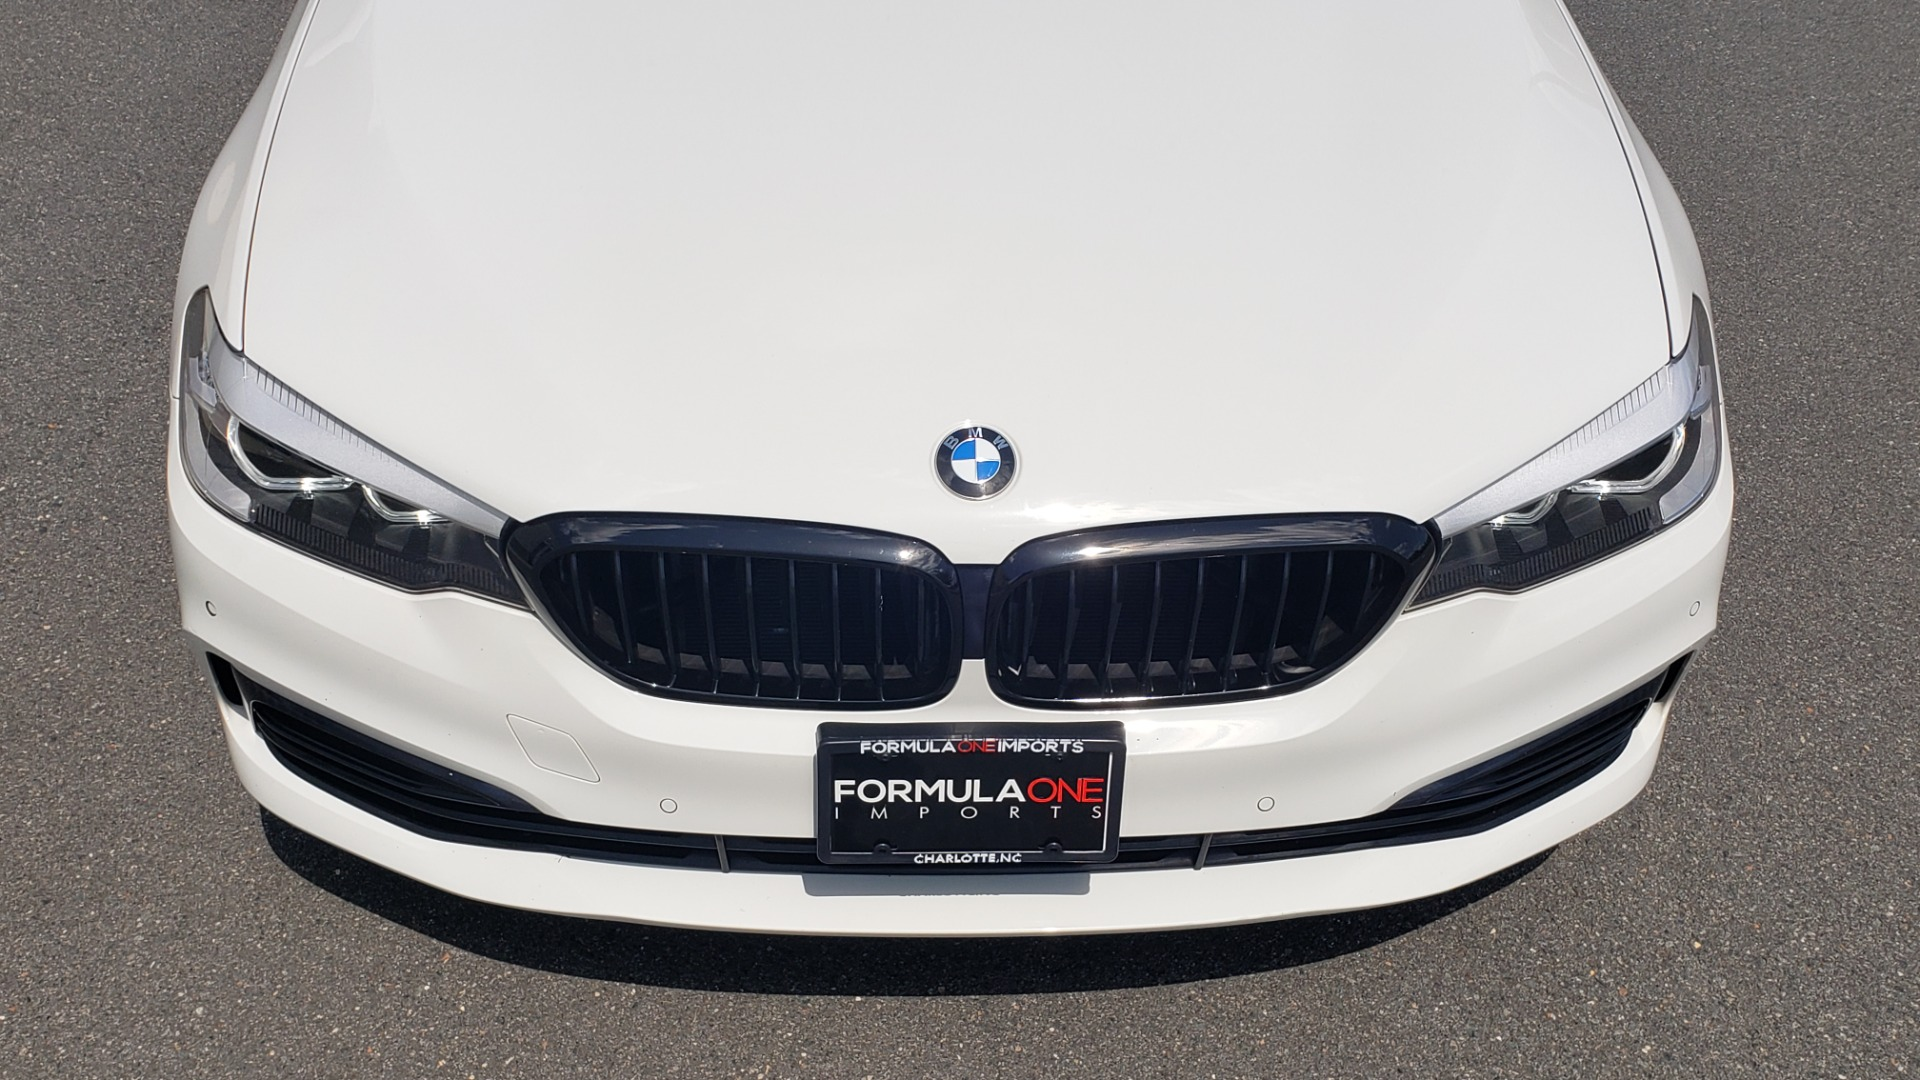 Used 2018 BMW 5 SERIES 530I XDRIVE PREMIUM / PARK ASST / NAV / SUNROOF / REARIEW for sale $37,795 at Formula Imports in Charlotte NC 28227 22